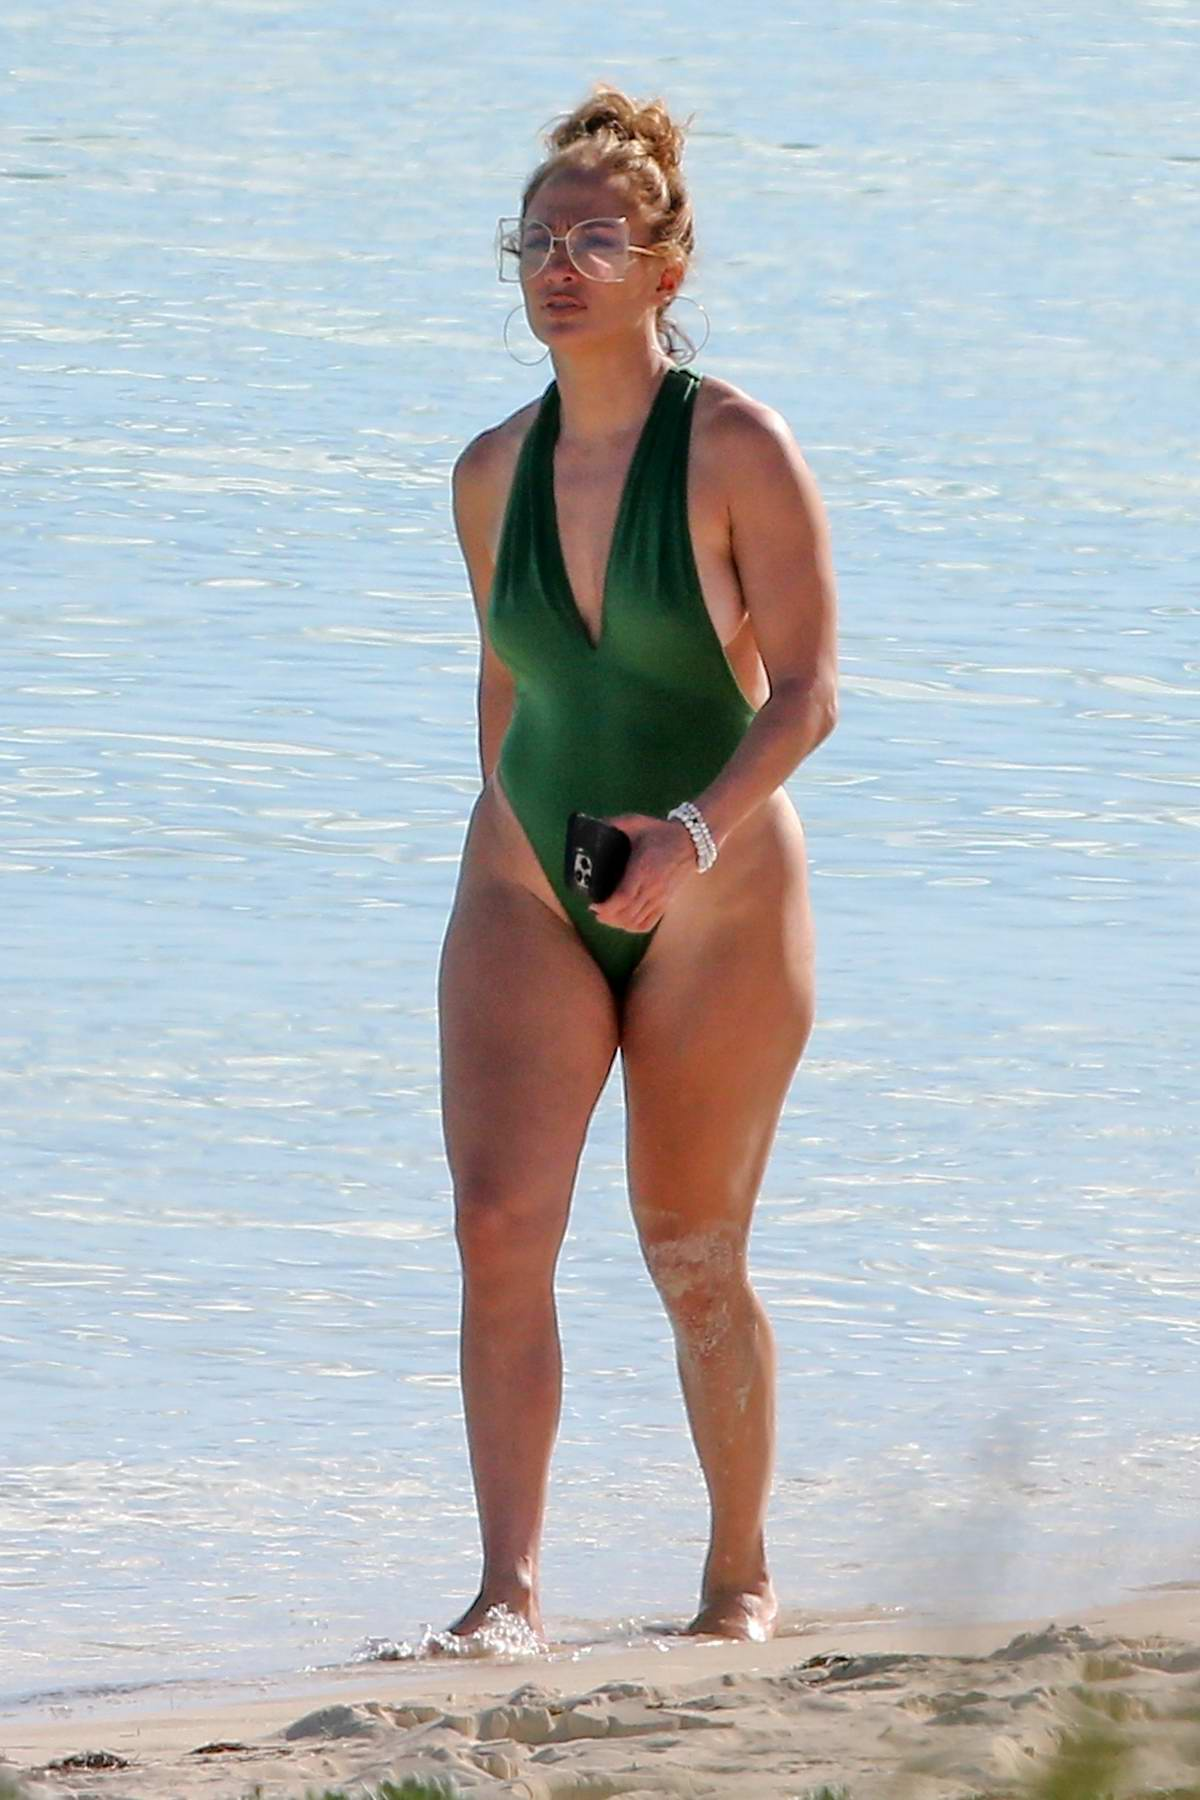 Jennifer Lopez shows off her curves in a green swimsuit while on the beach in Turks and Caicos